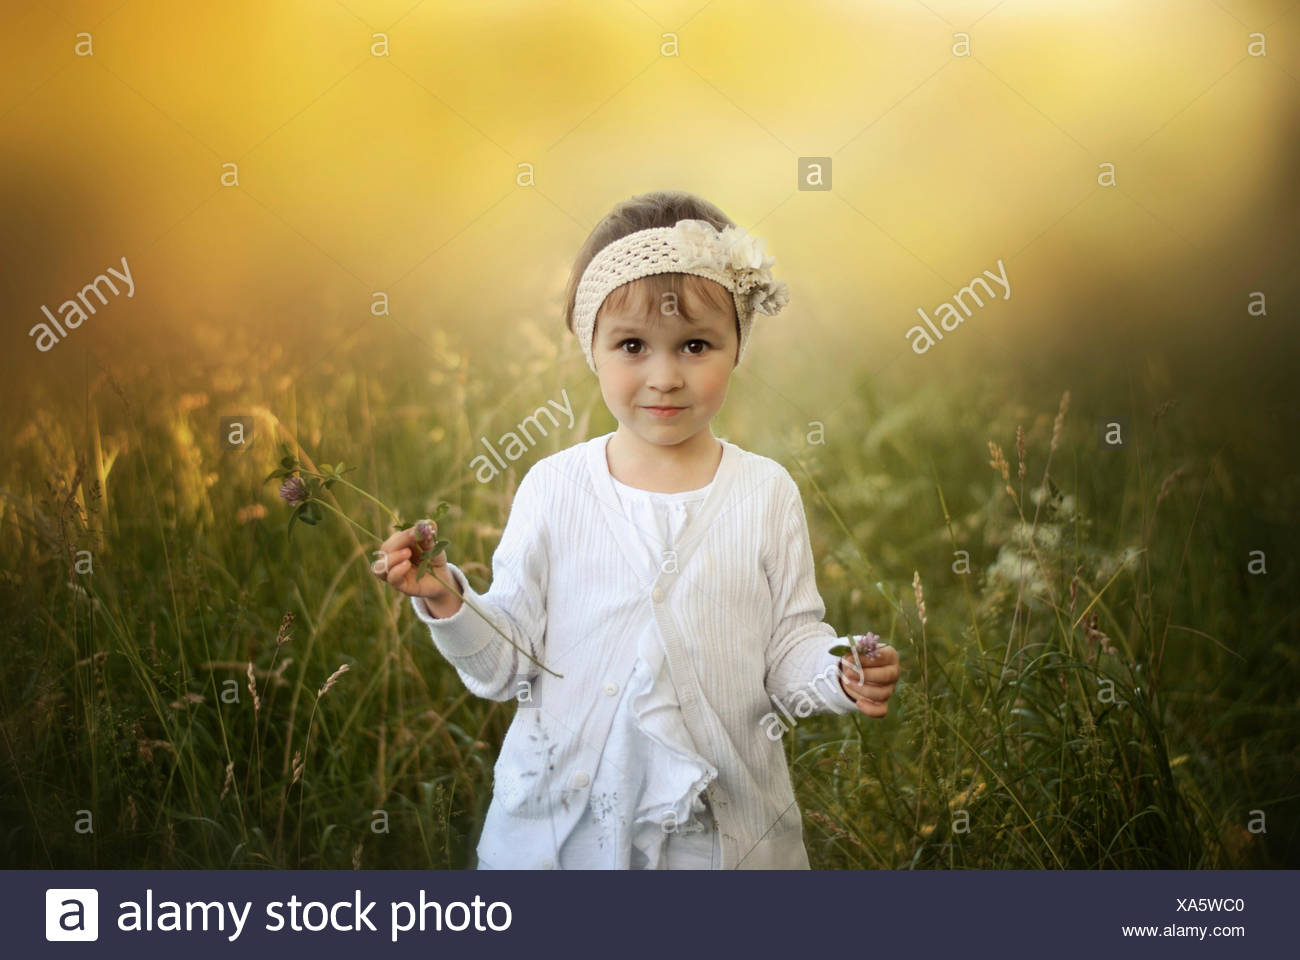 Girl standing in field - Stock Image